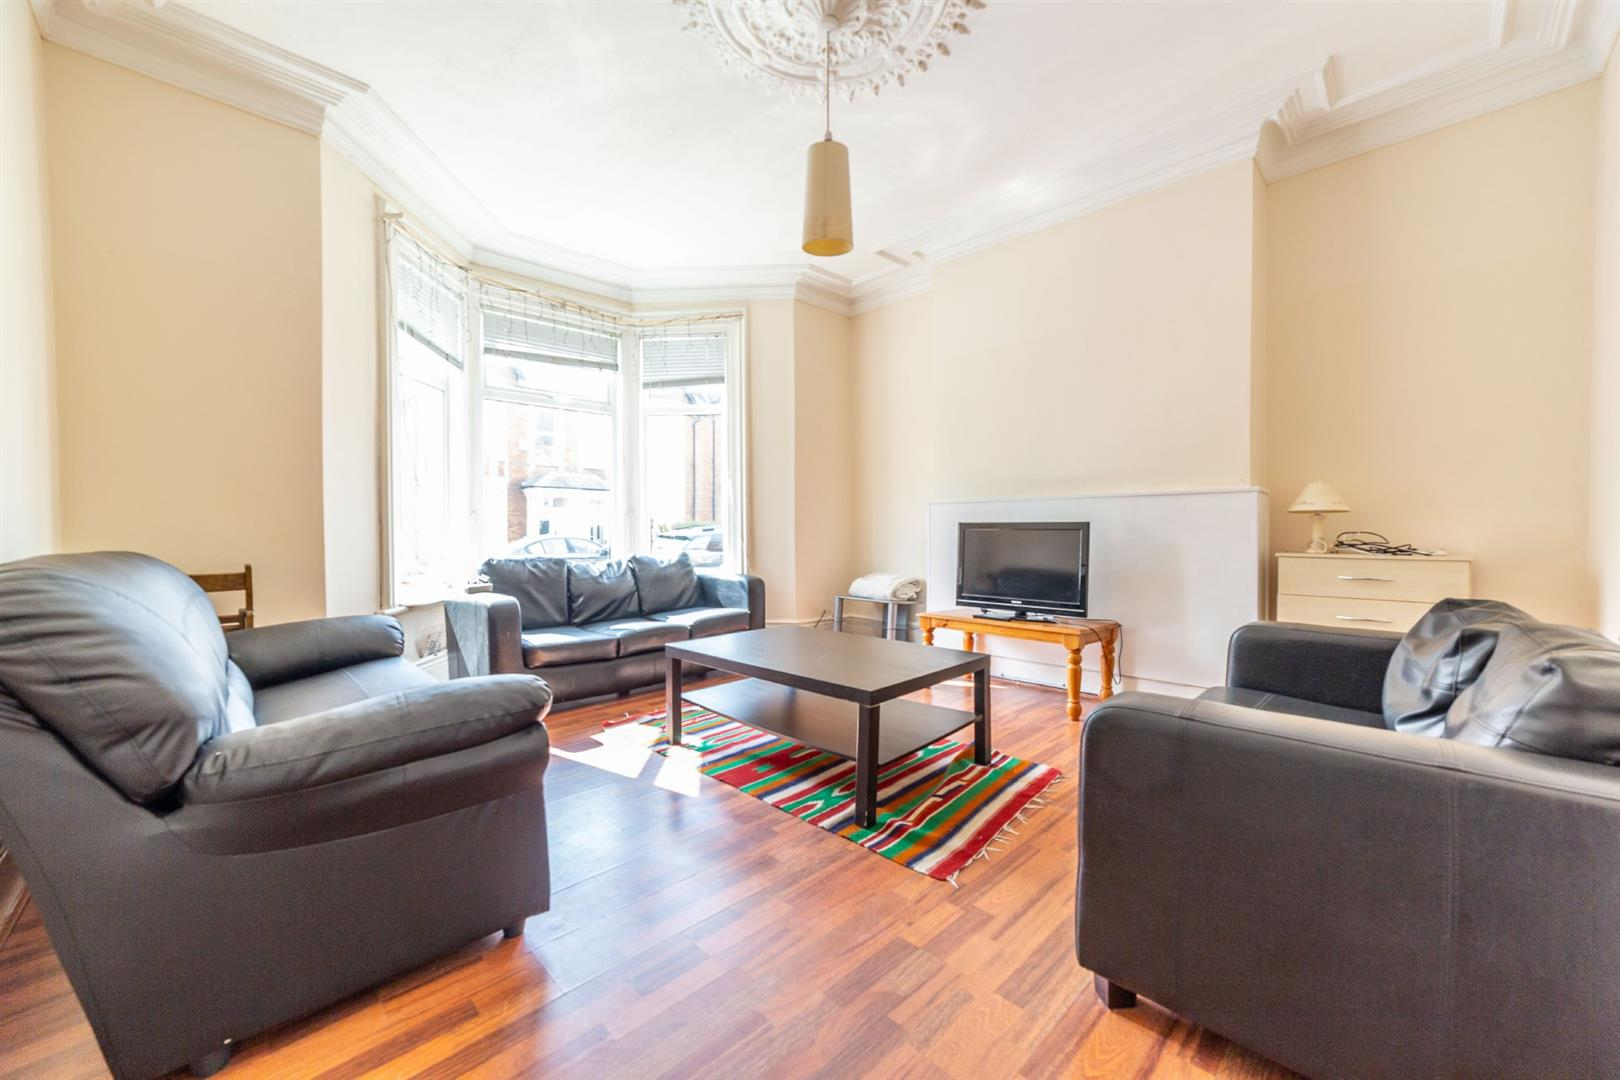 5 bed terraced house to rent in Newcastle Upon Tyne, NE6 5JY  - Property Image 1